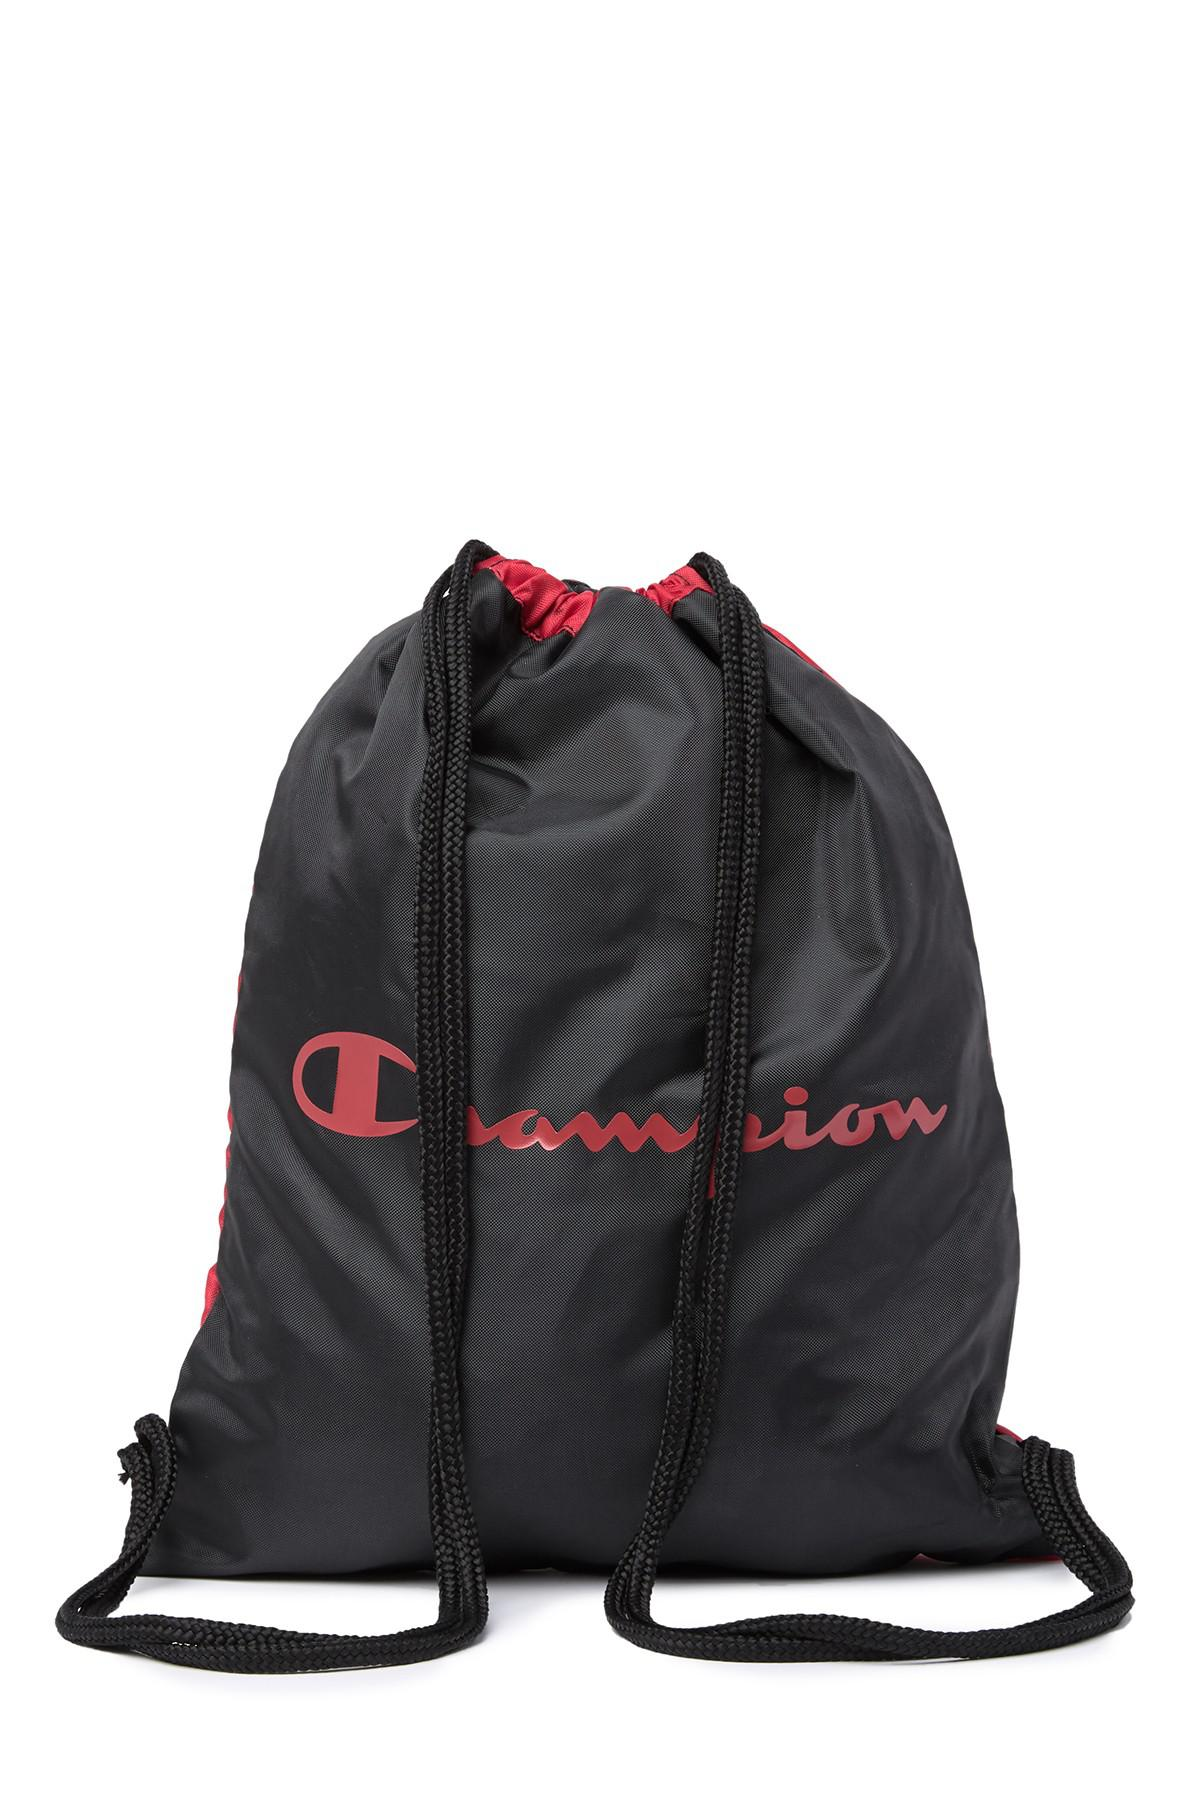 Champion - Red Forever Champ Double Up Sack Pack for Men - Lyst. View  fullscreen 614243d074c49